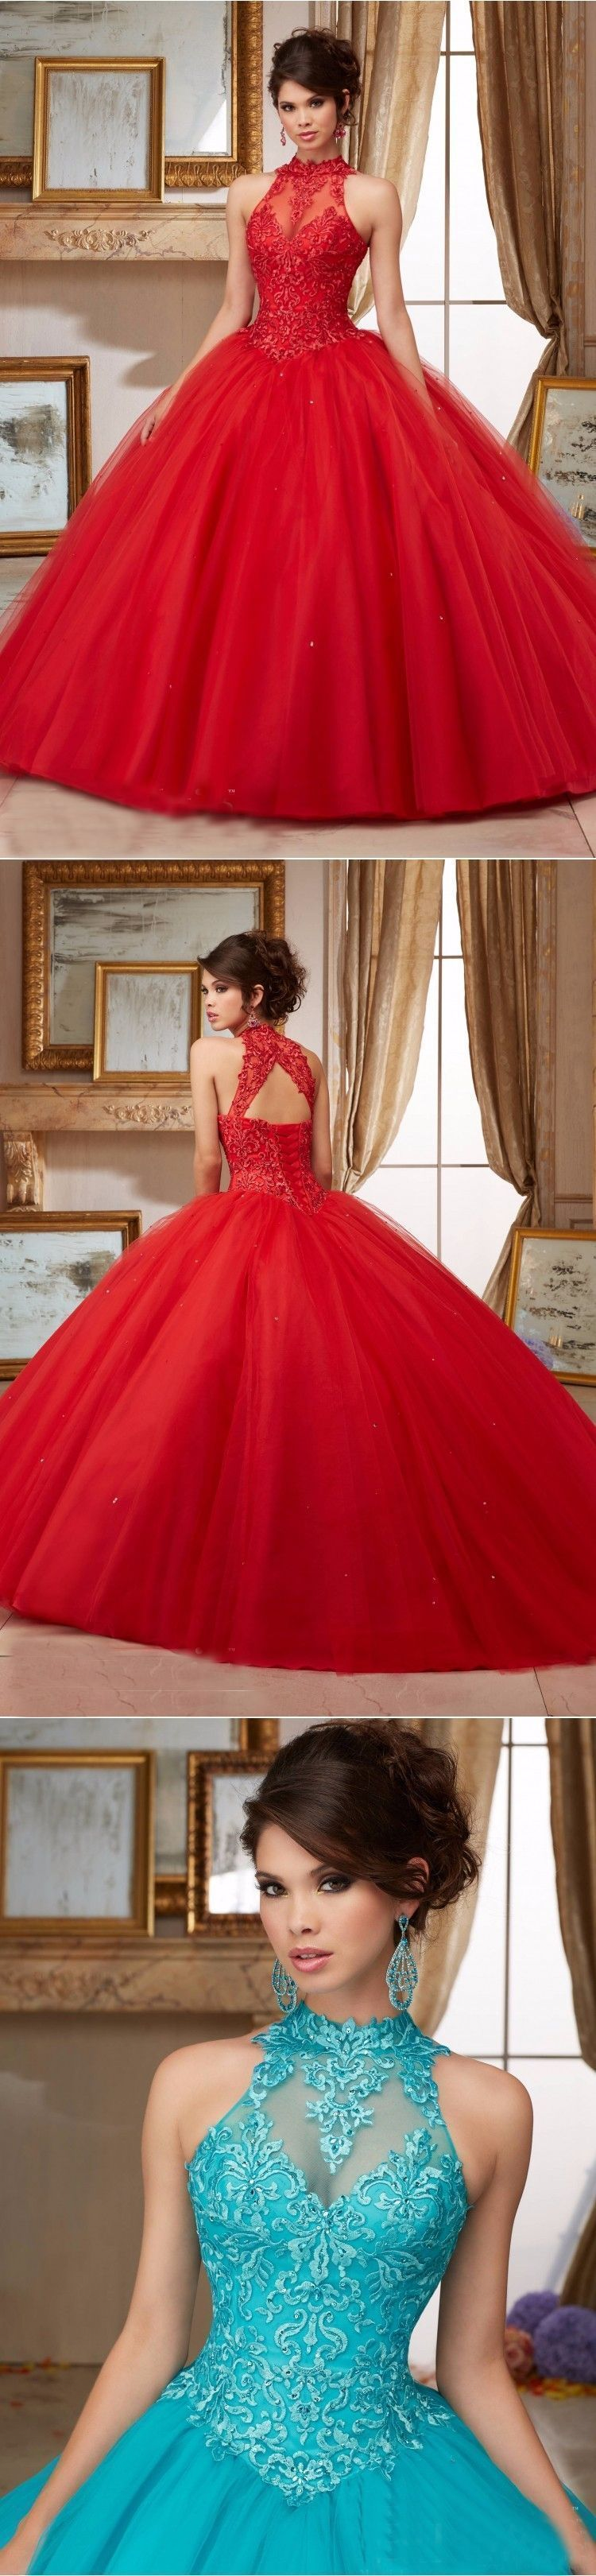 Red wedding dresses no risk shopping new ball gown high collar